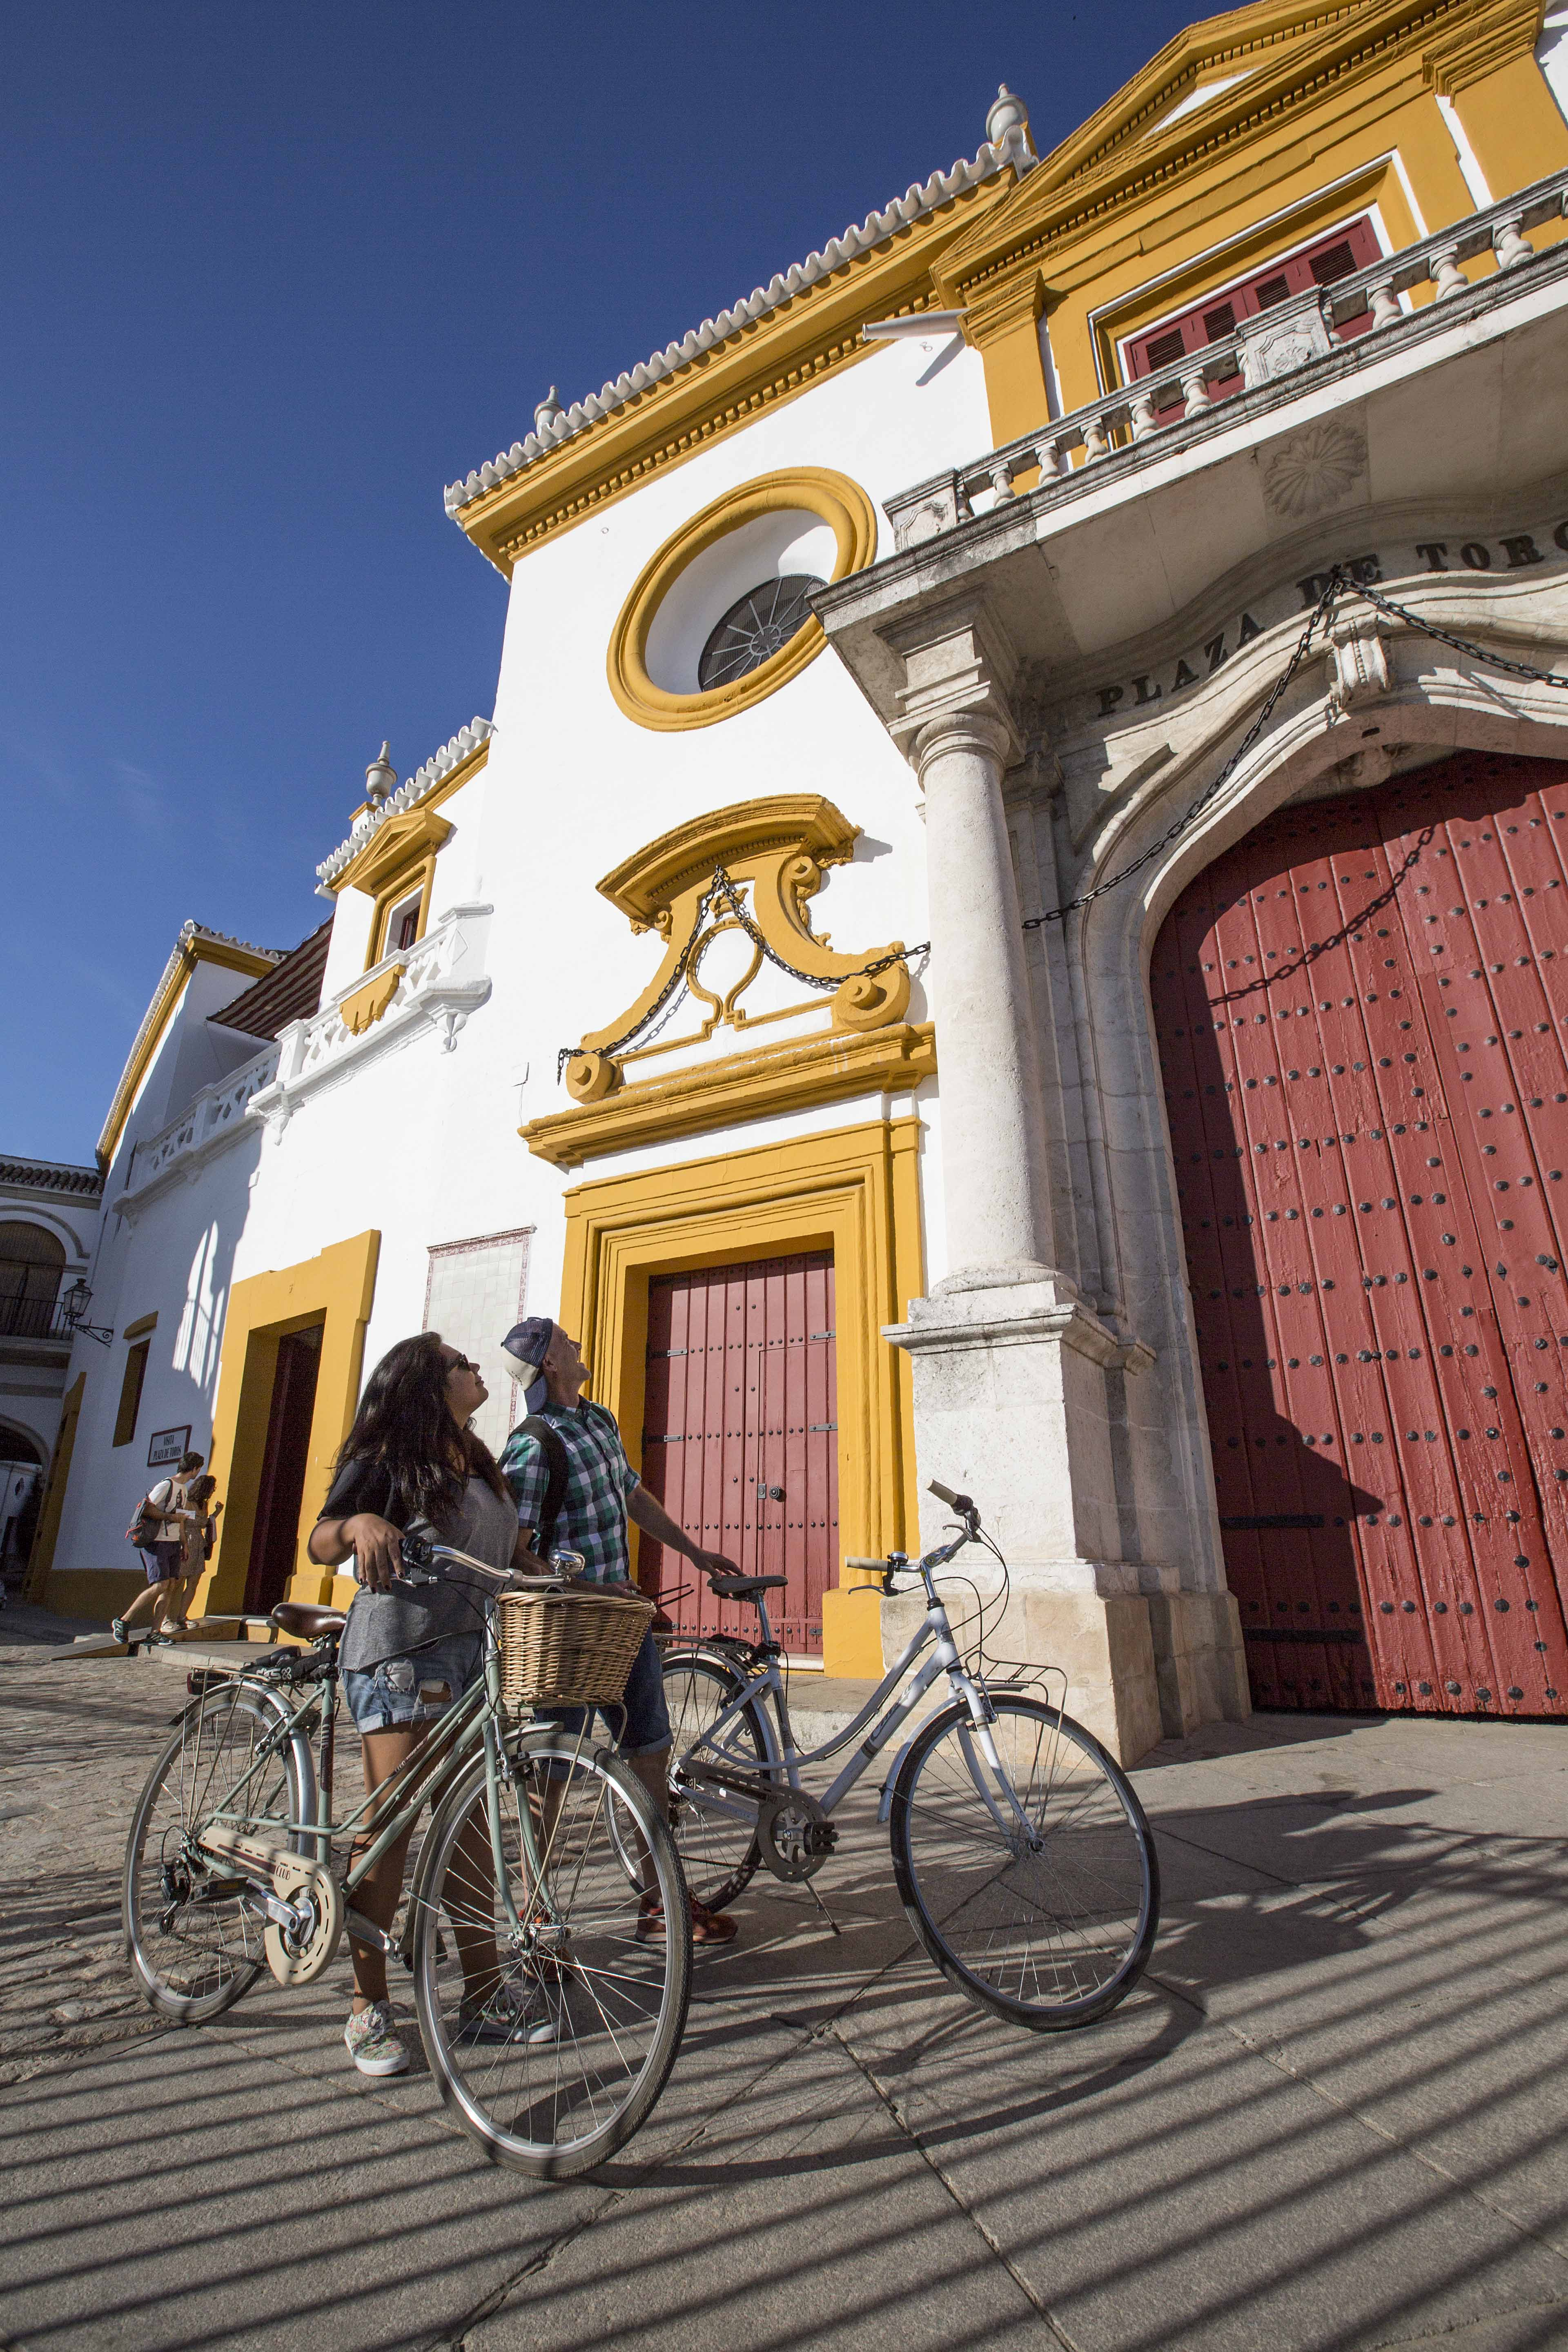 National Geographic Traveller's guide to Seville (including Seebybike!!!)